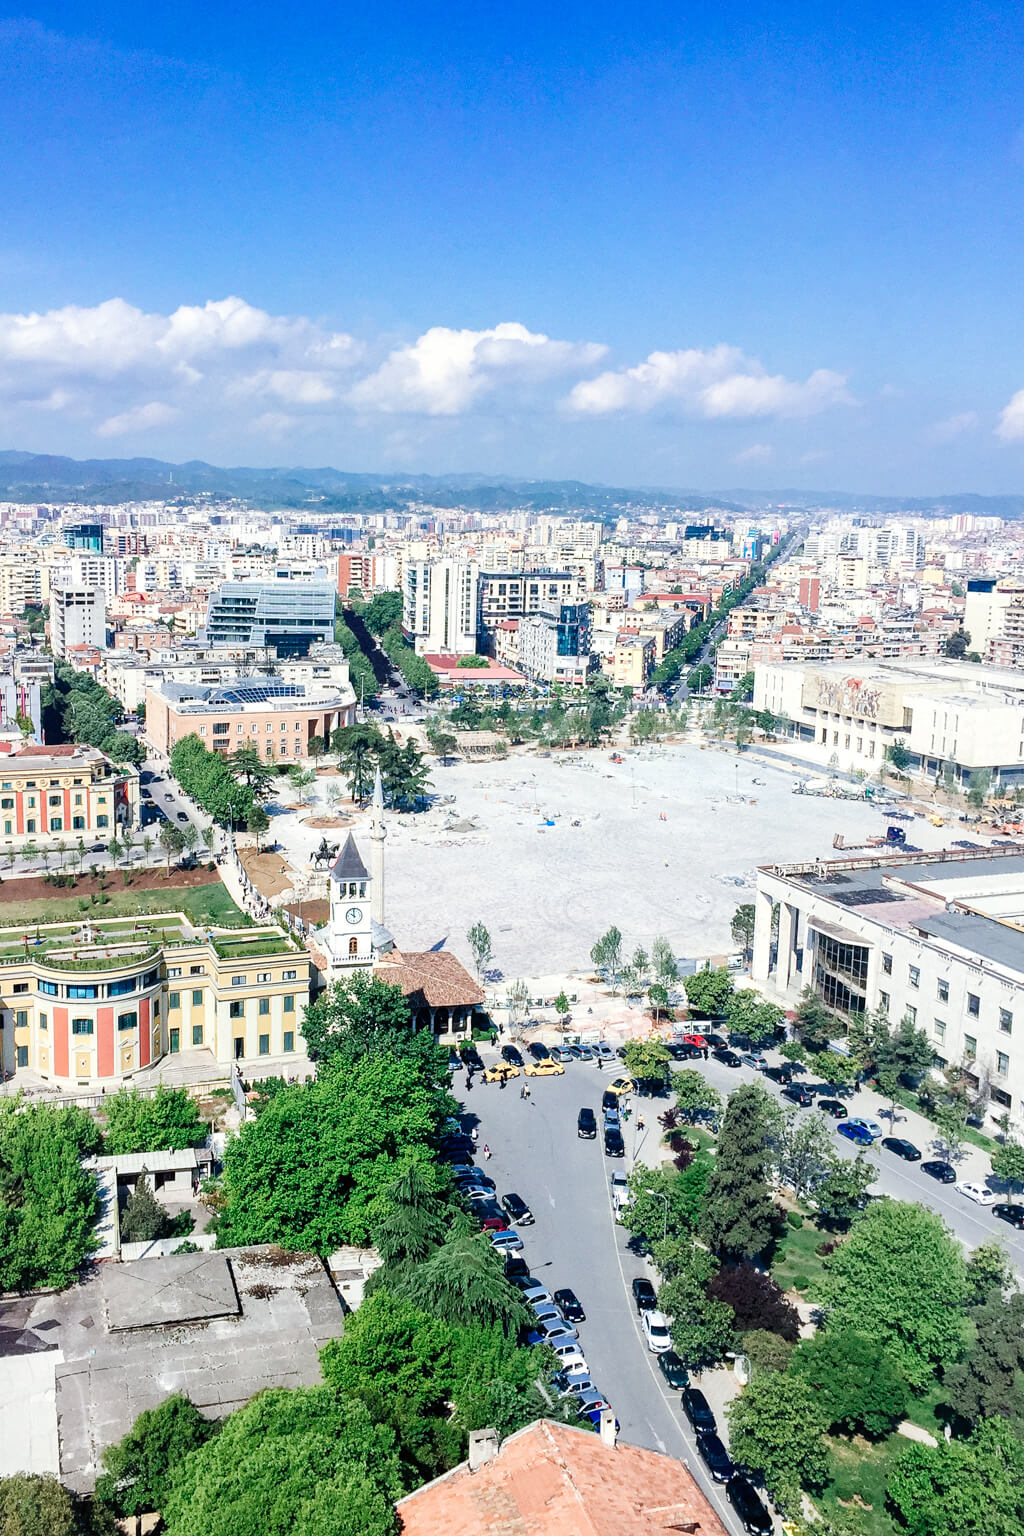 Tirana in 2017 from the Plaza Hotel